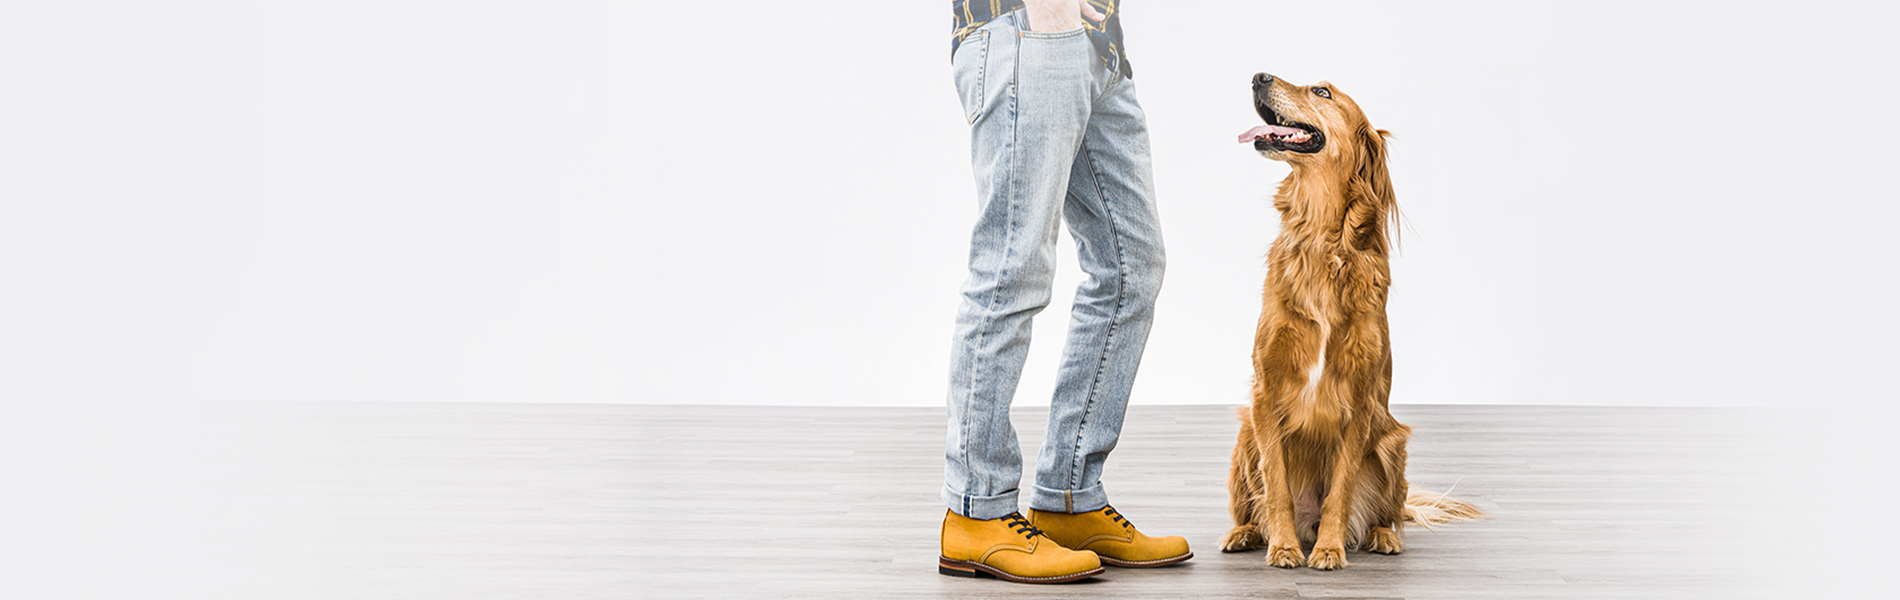 A man and his dog. The color of the man's shoes matches the dog's coat.